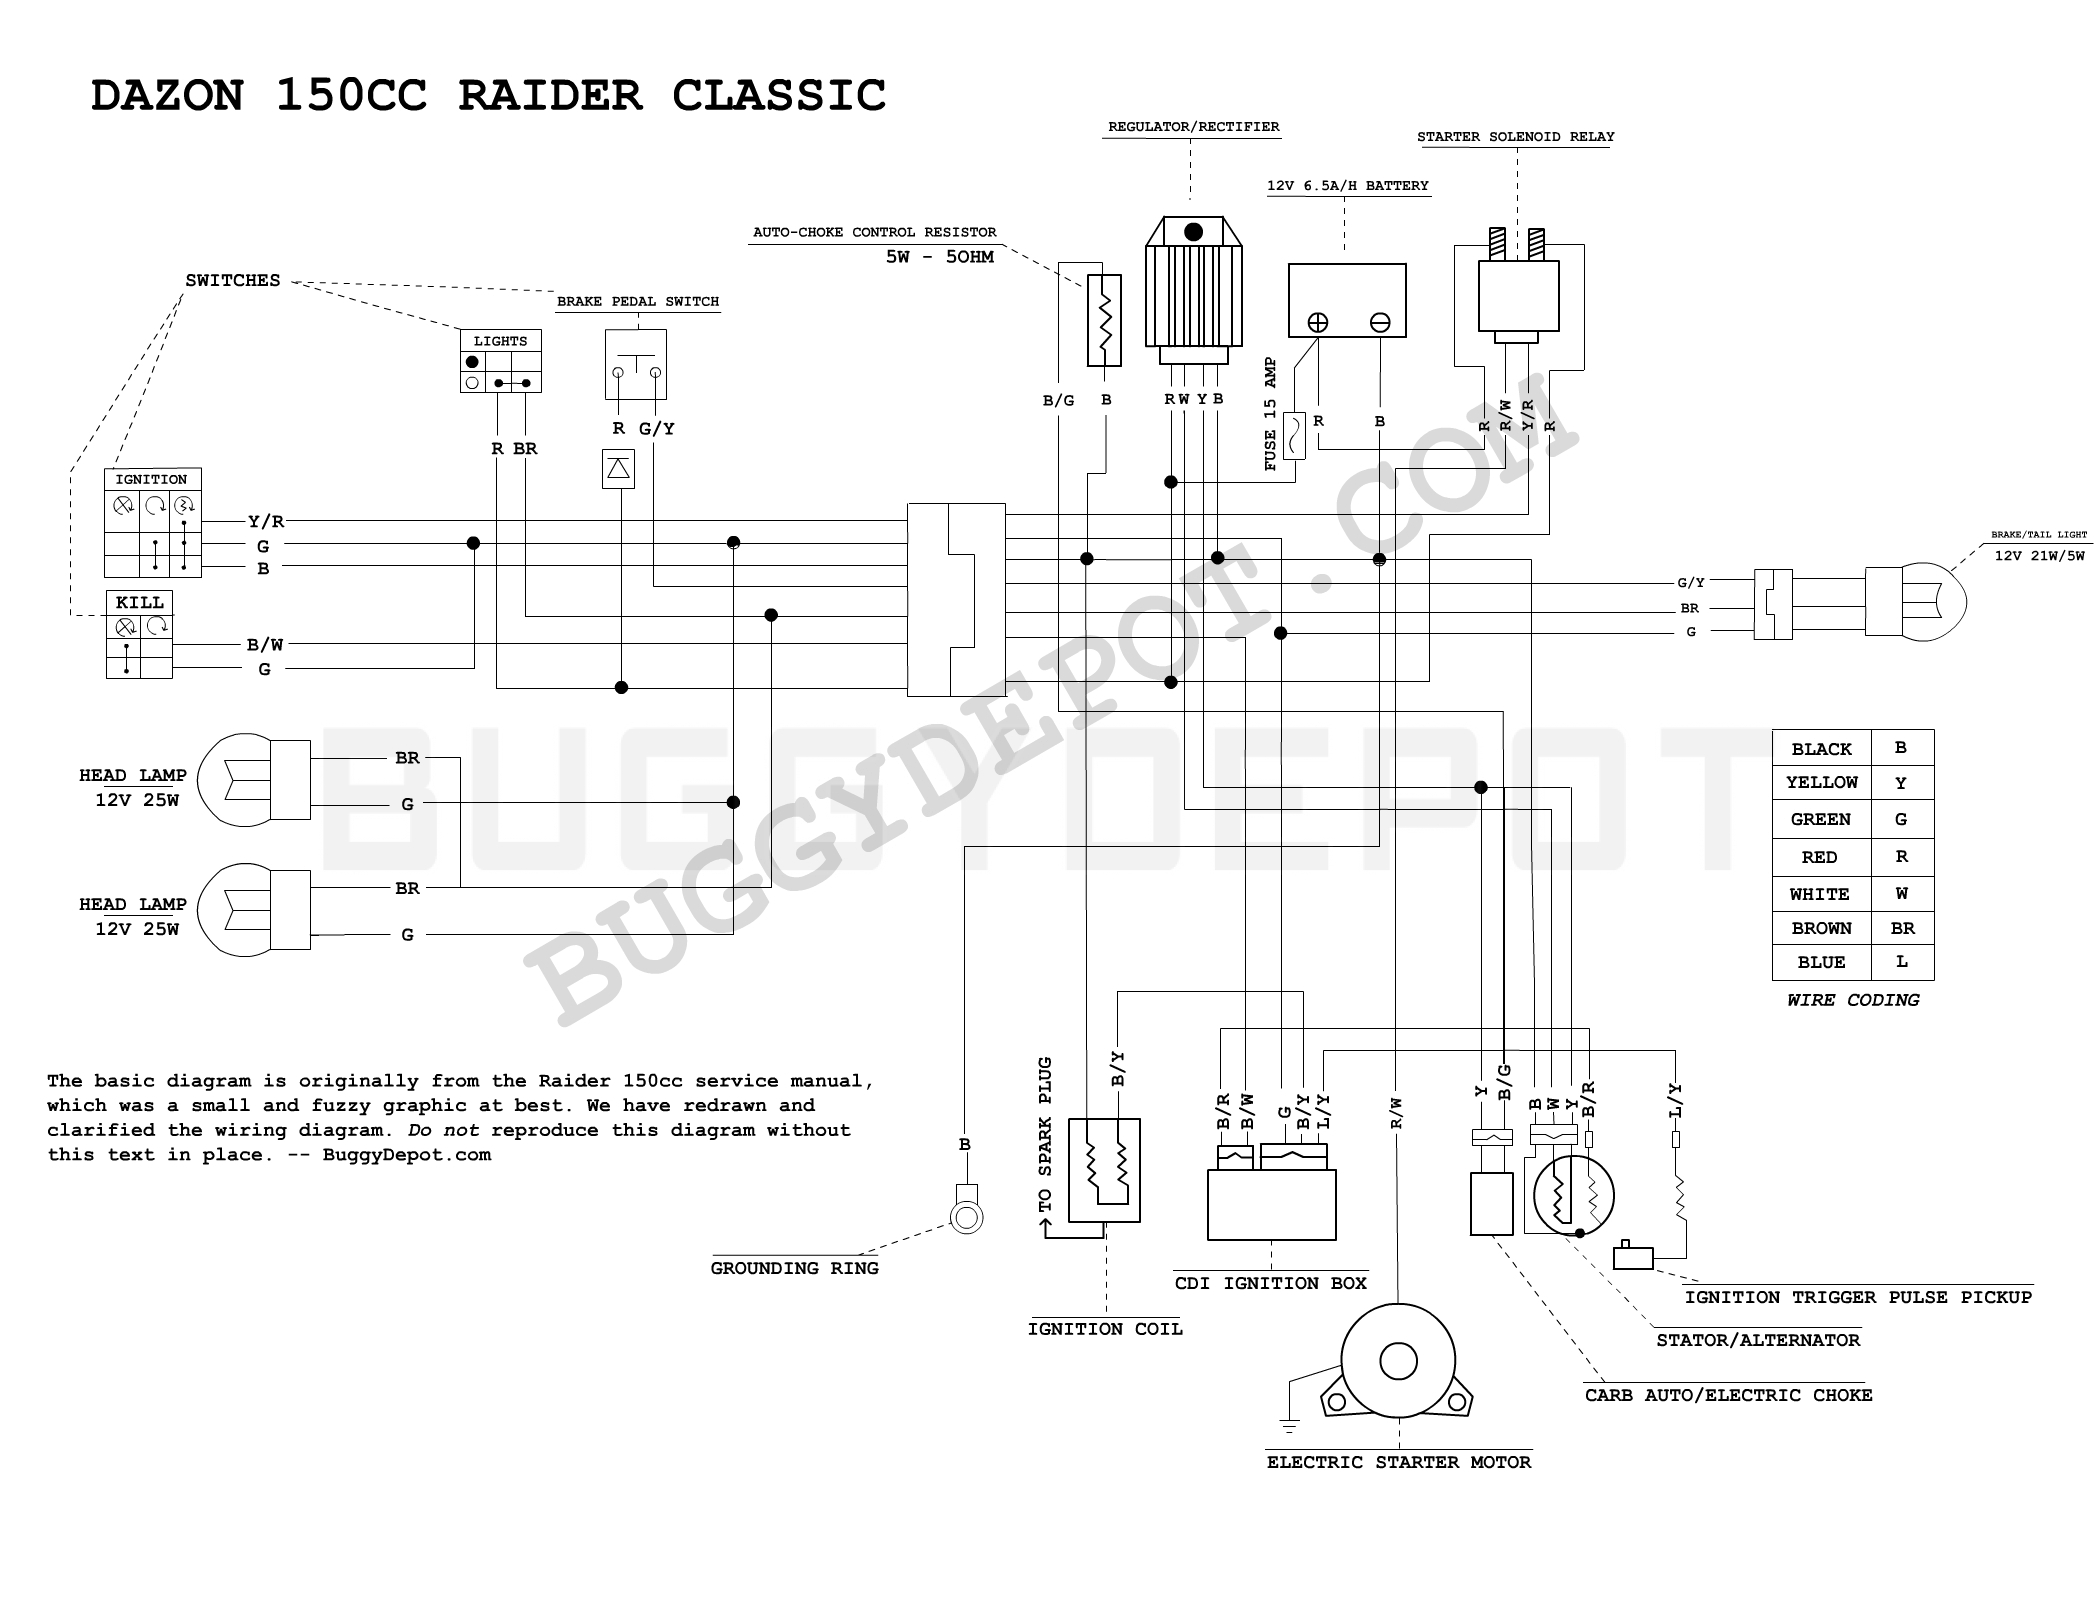 Baja 150 Atv Wiring Diagram | Wiring Diagram | Article Review Baja Wiring Diagram on baja 250 parts, baja 250 honda, baja scooter repair manual, baja 250 transmission diagram, baja 250 engine, baja 50 atv parts diagram, baja heat mini bike manual, baja 250 flywheel, baja doodle bug manual,